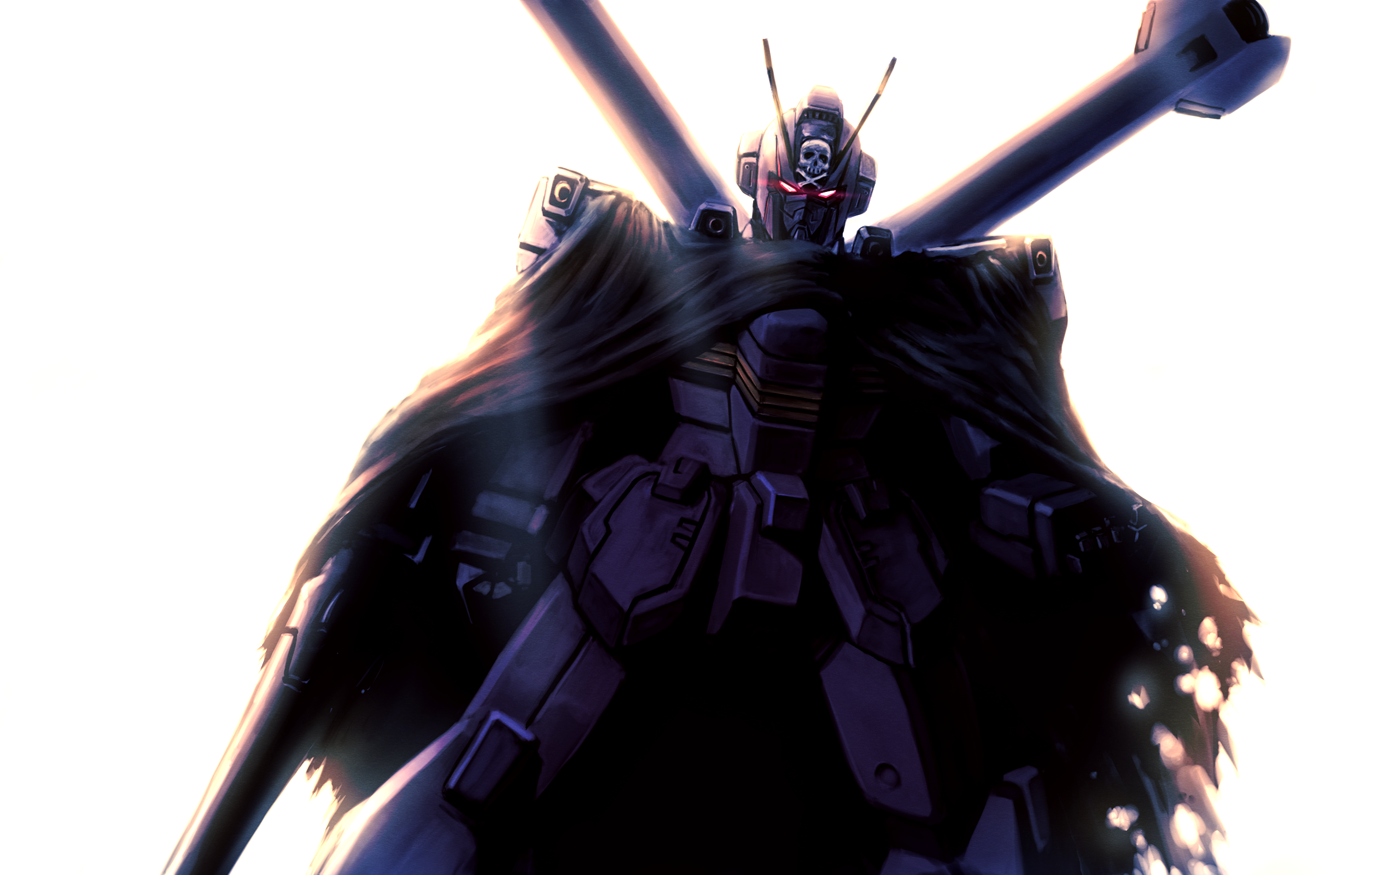 edelweiss anime than alia series better first looks more china aged have much hated orphans iron-blooded discussion until reminded point which gundam